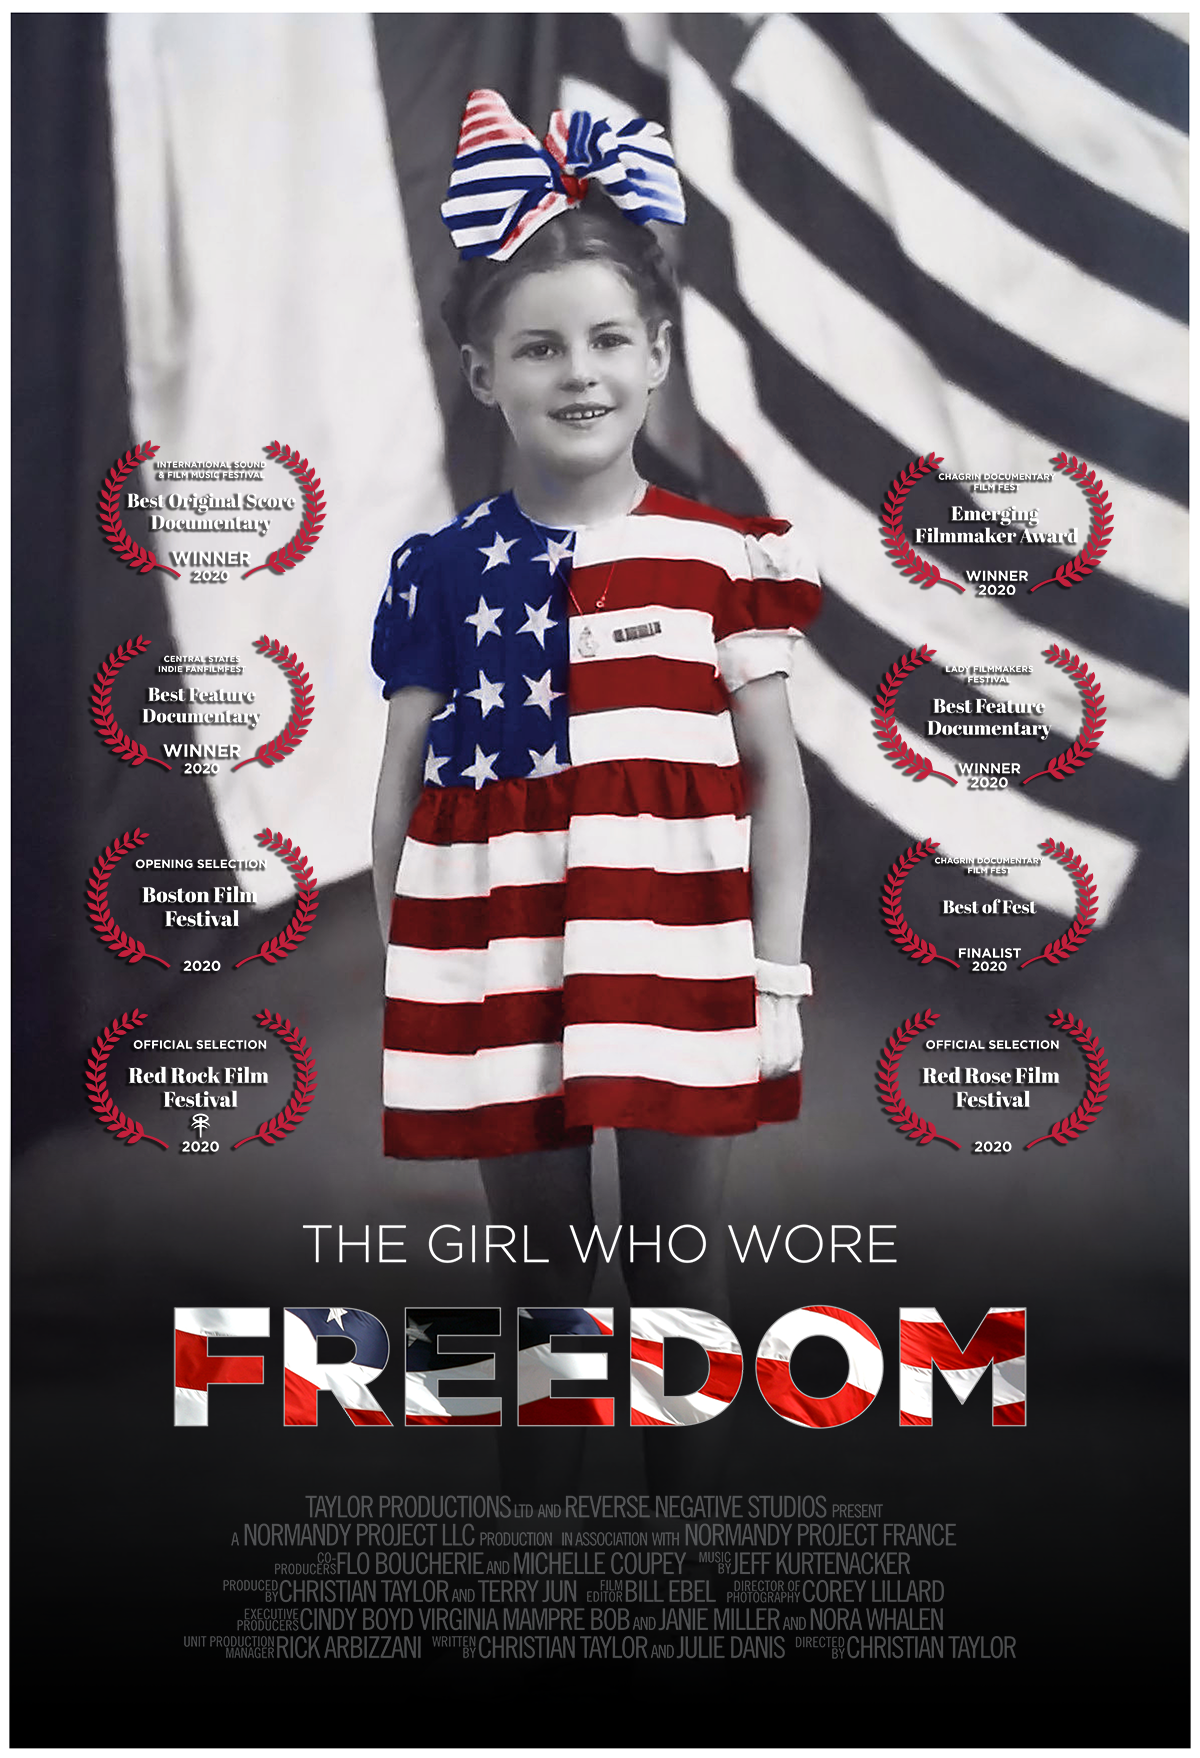 The Girl Who Wore Freedom movie poster vertical